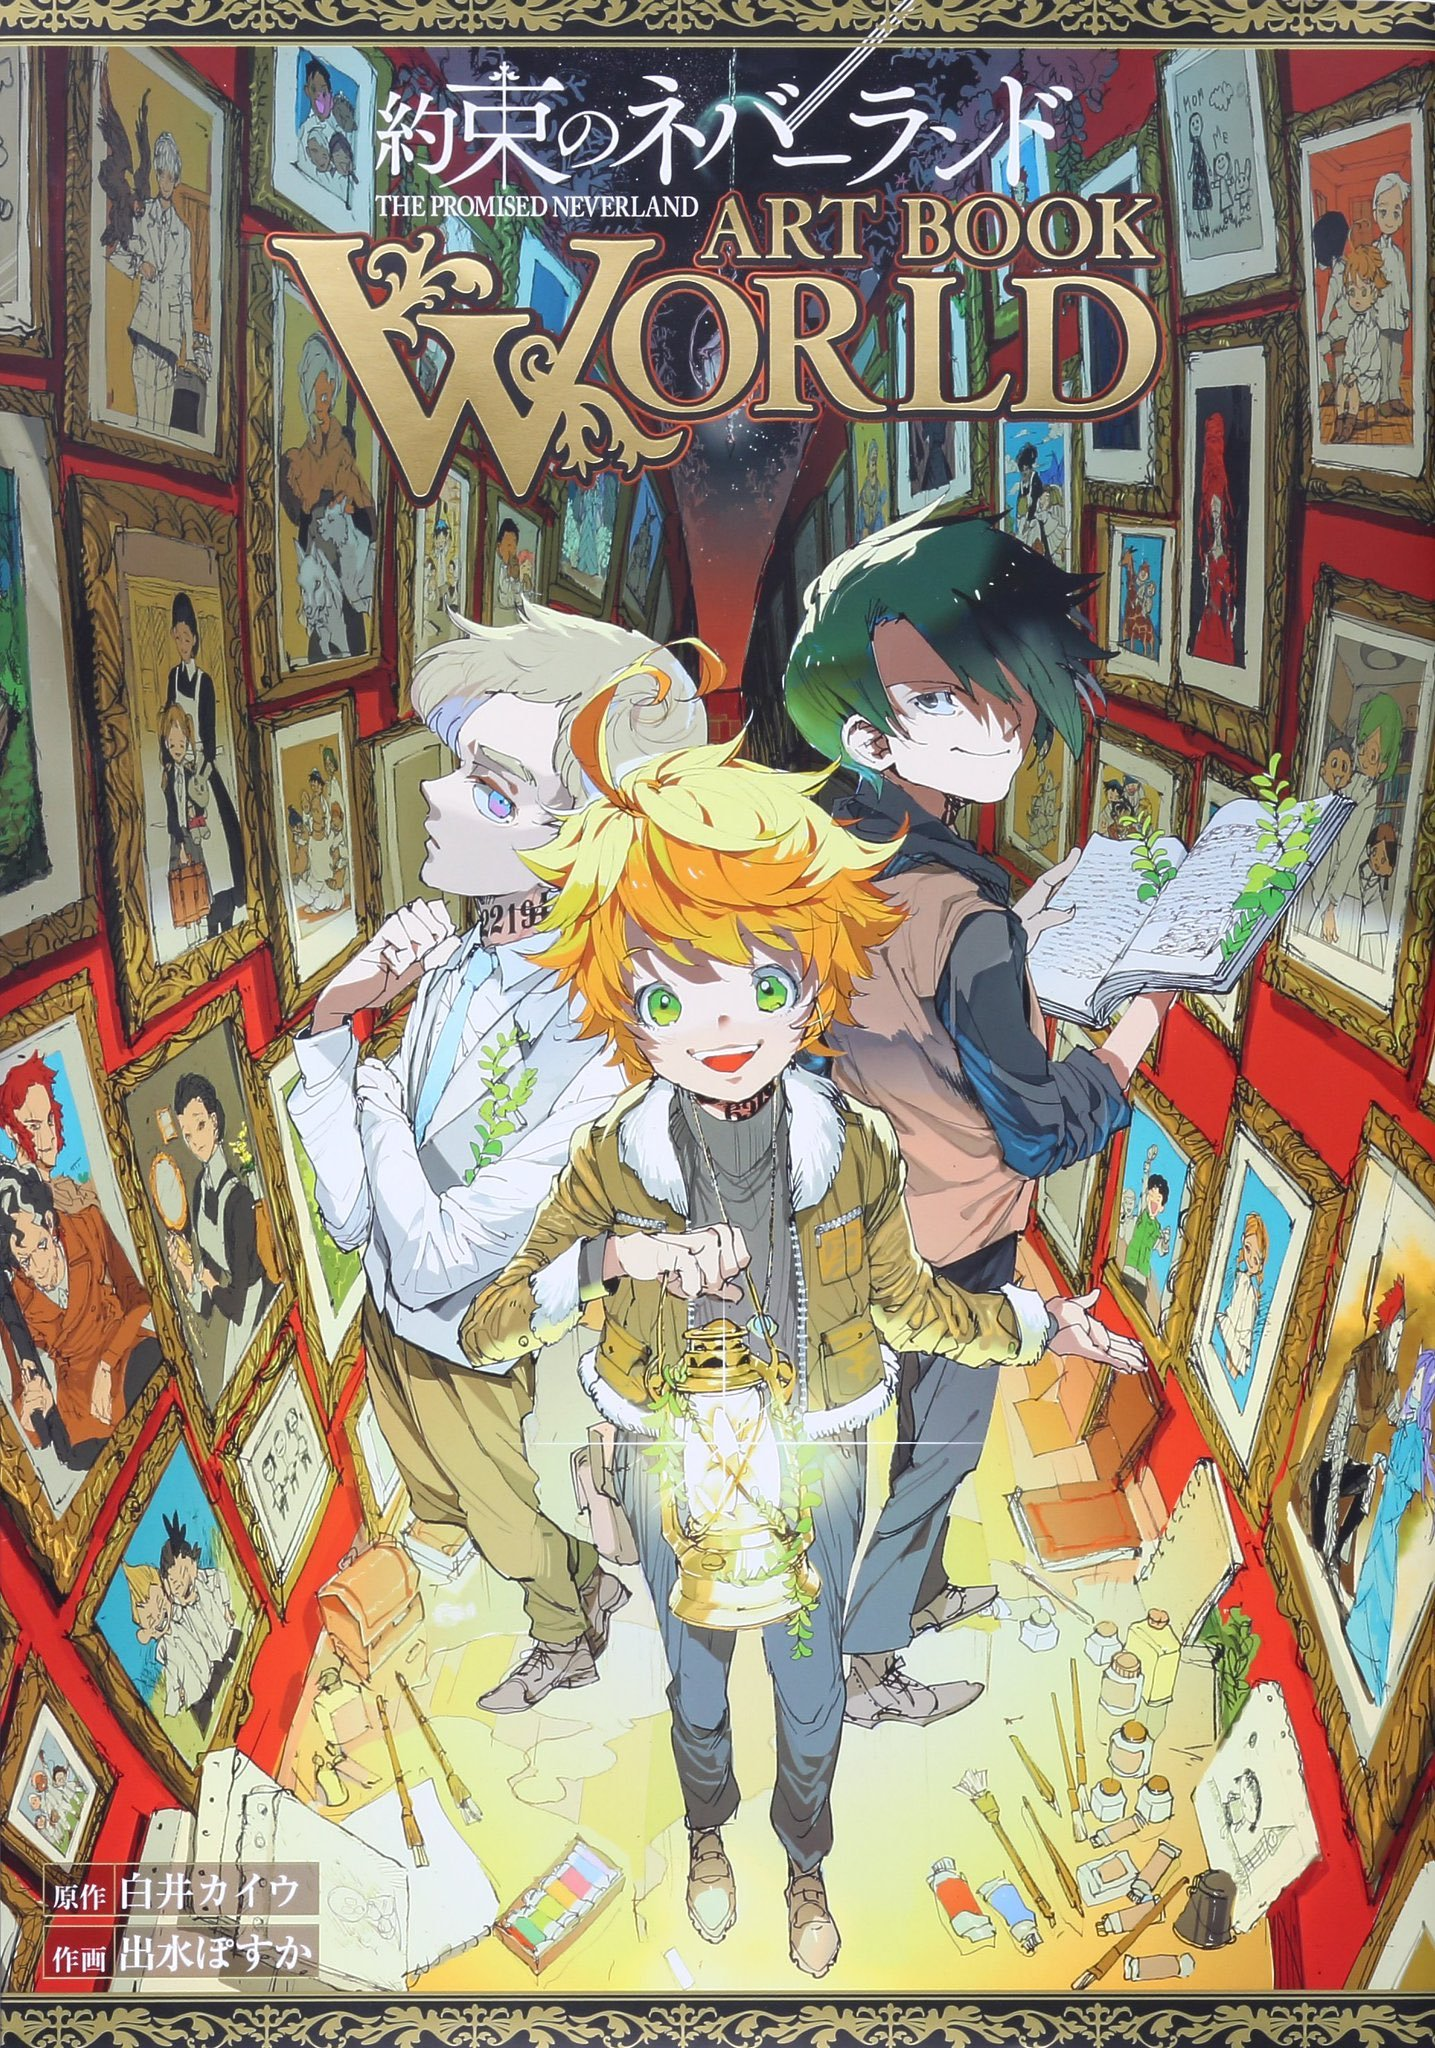 Shonen Jump News Unofficial On Twitter The Promised Neverland Art Book World Cover Https T Co 3dd1ziuo3w